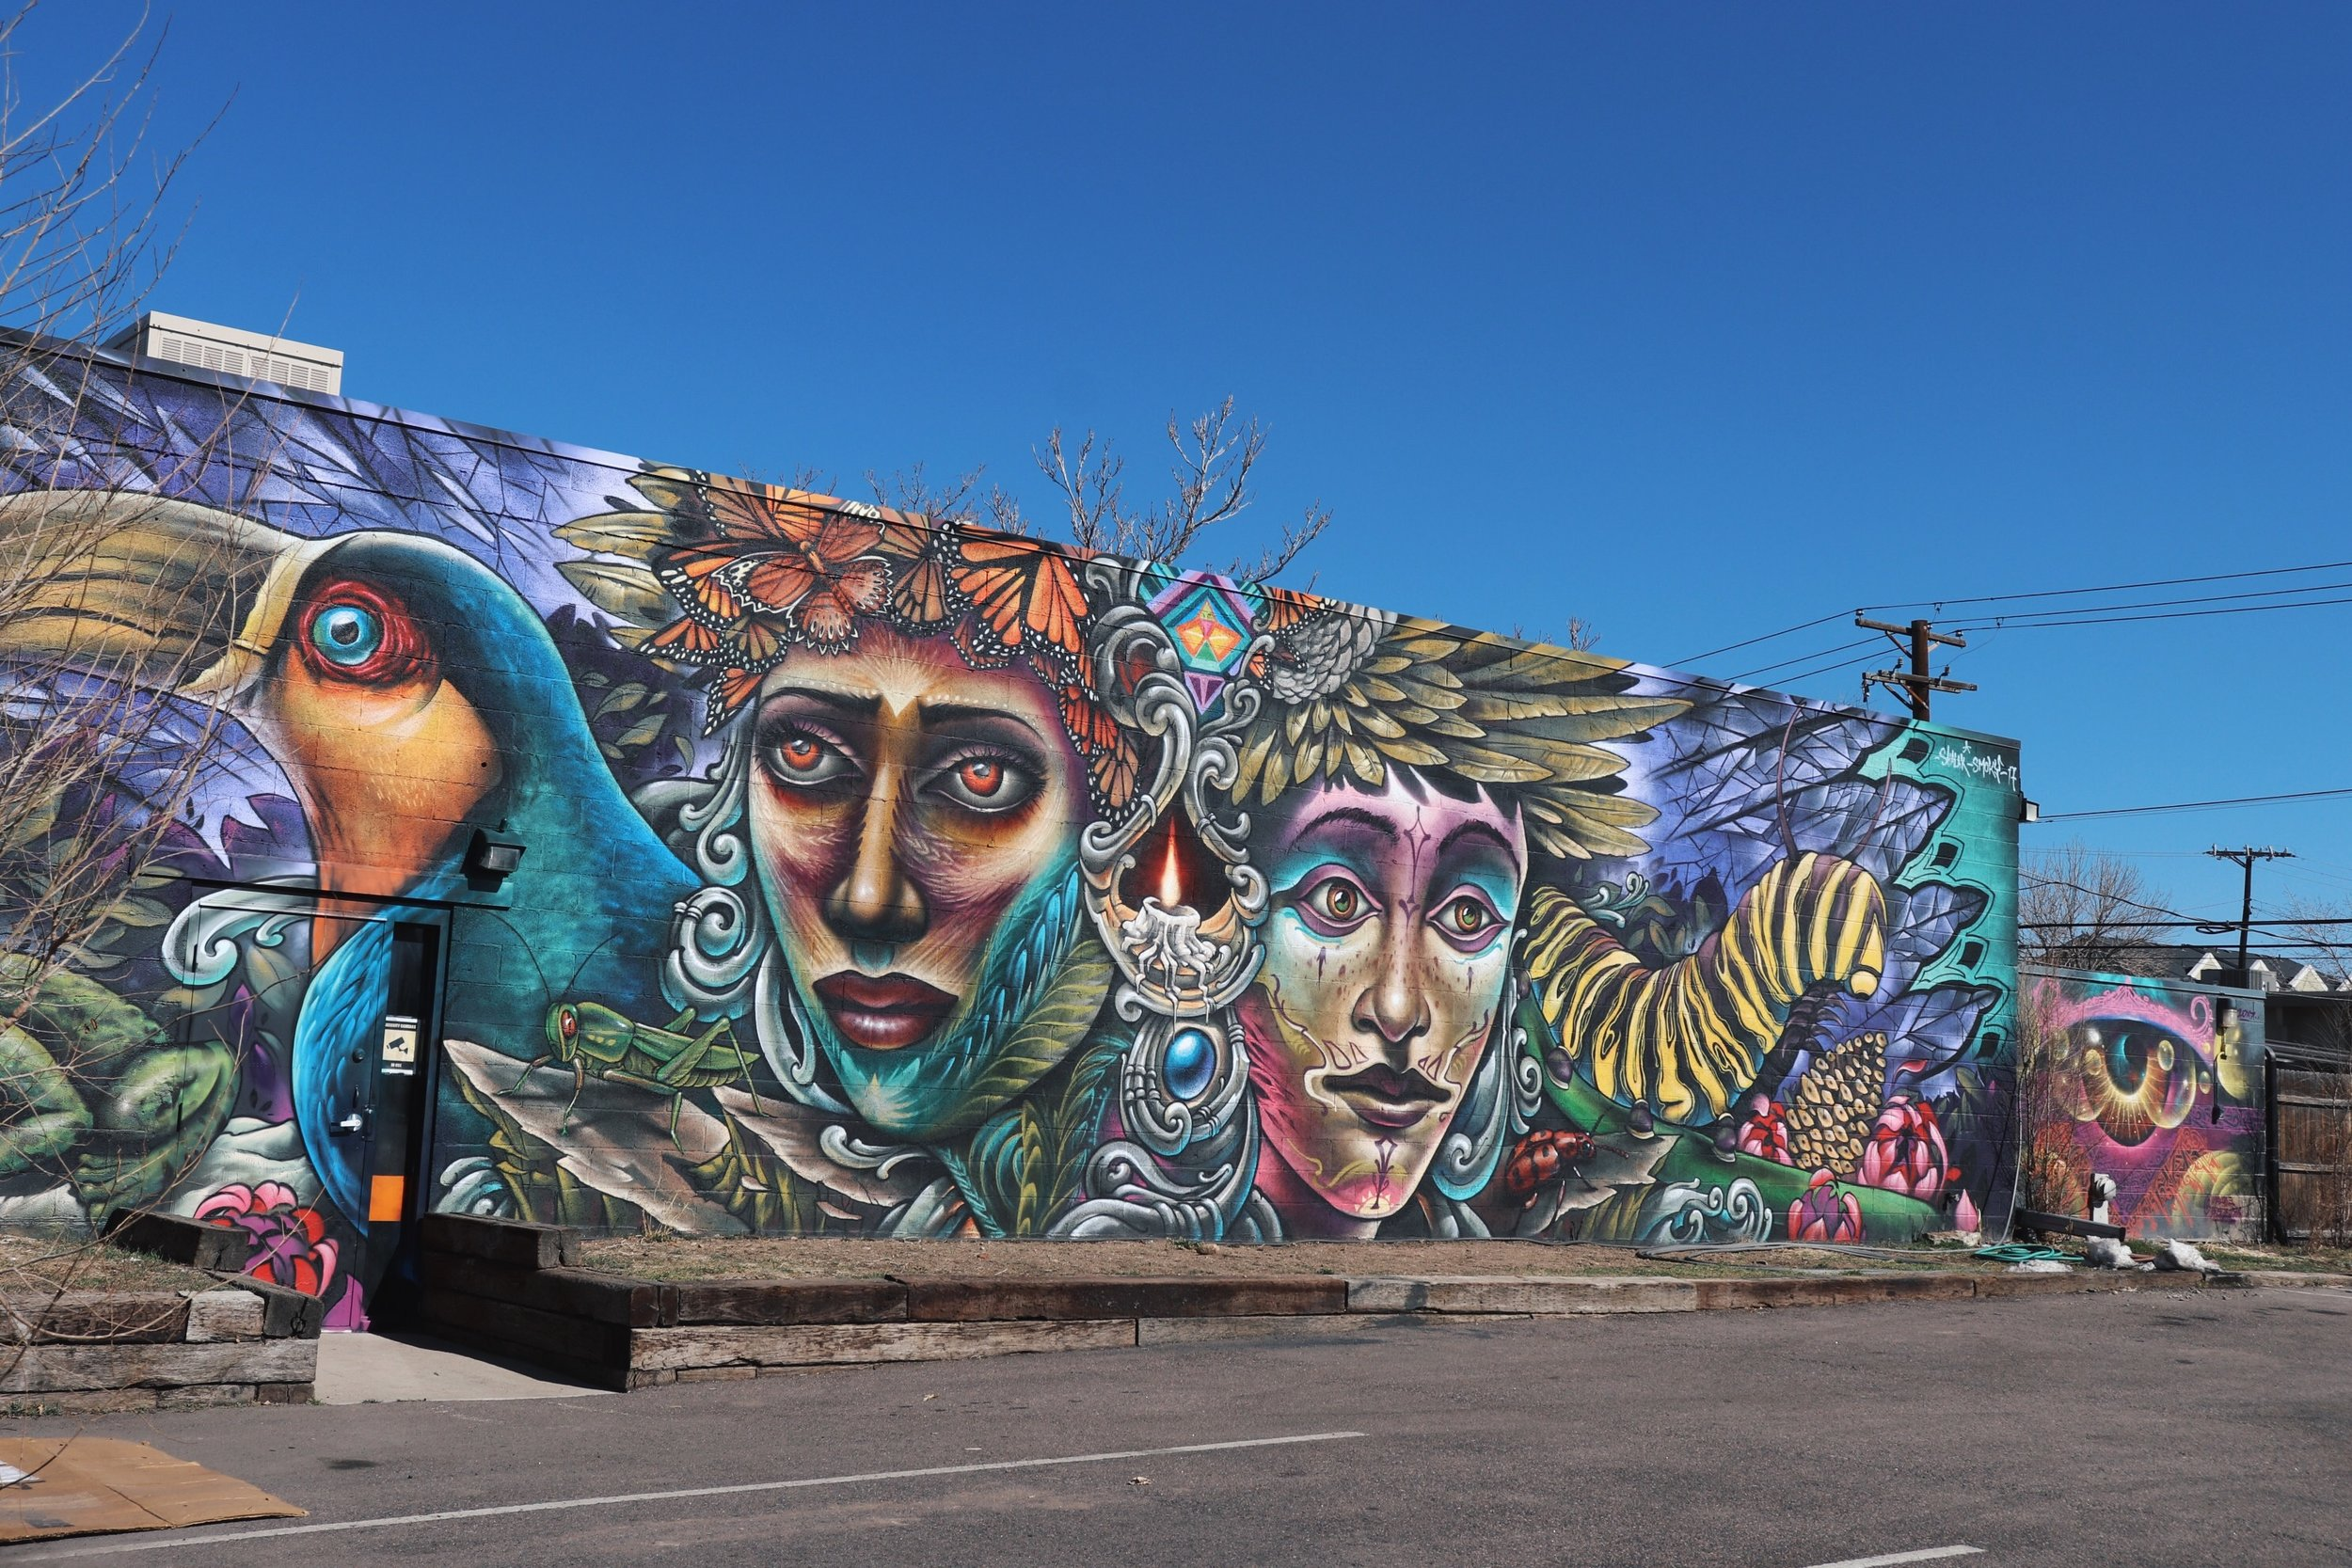 Wall Art at Five Points